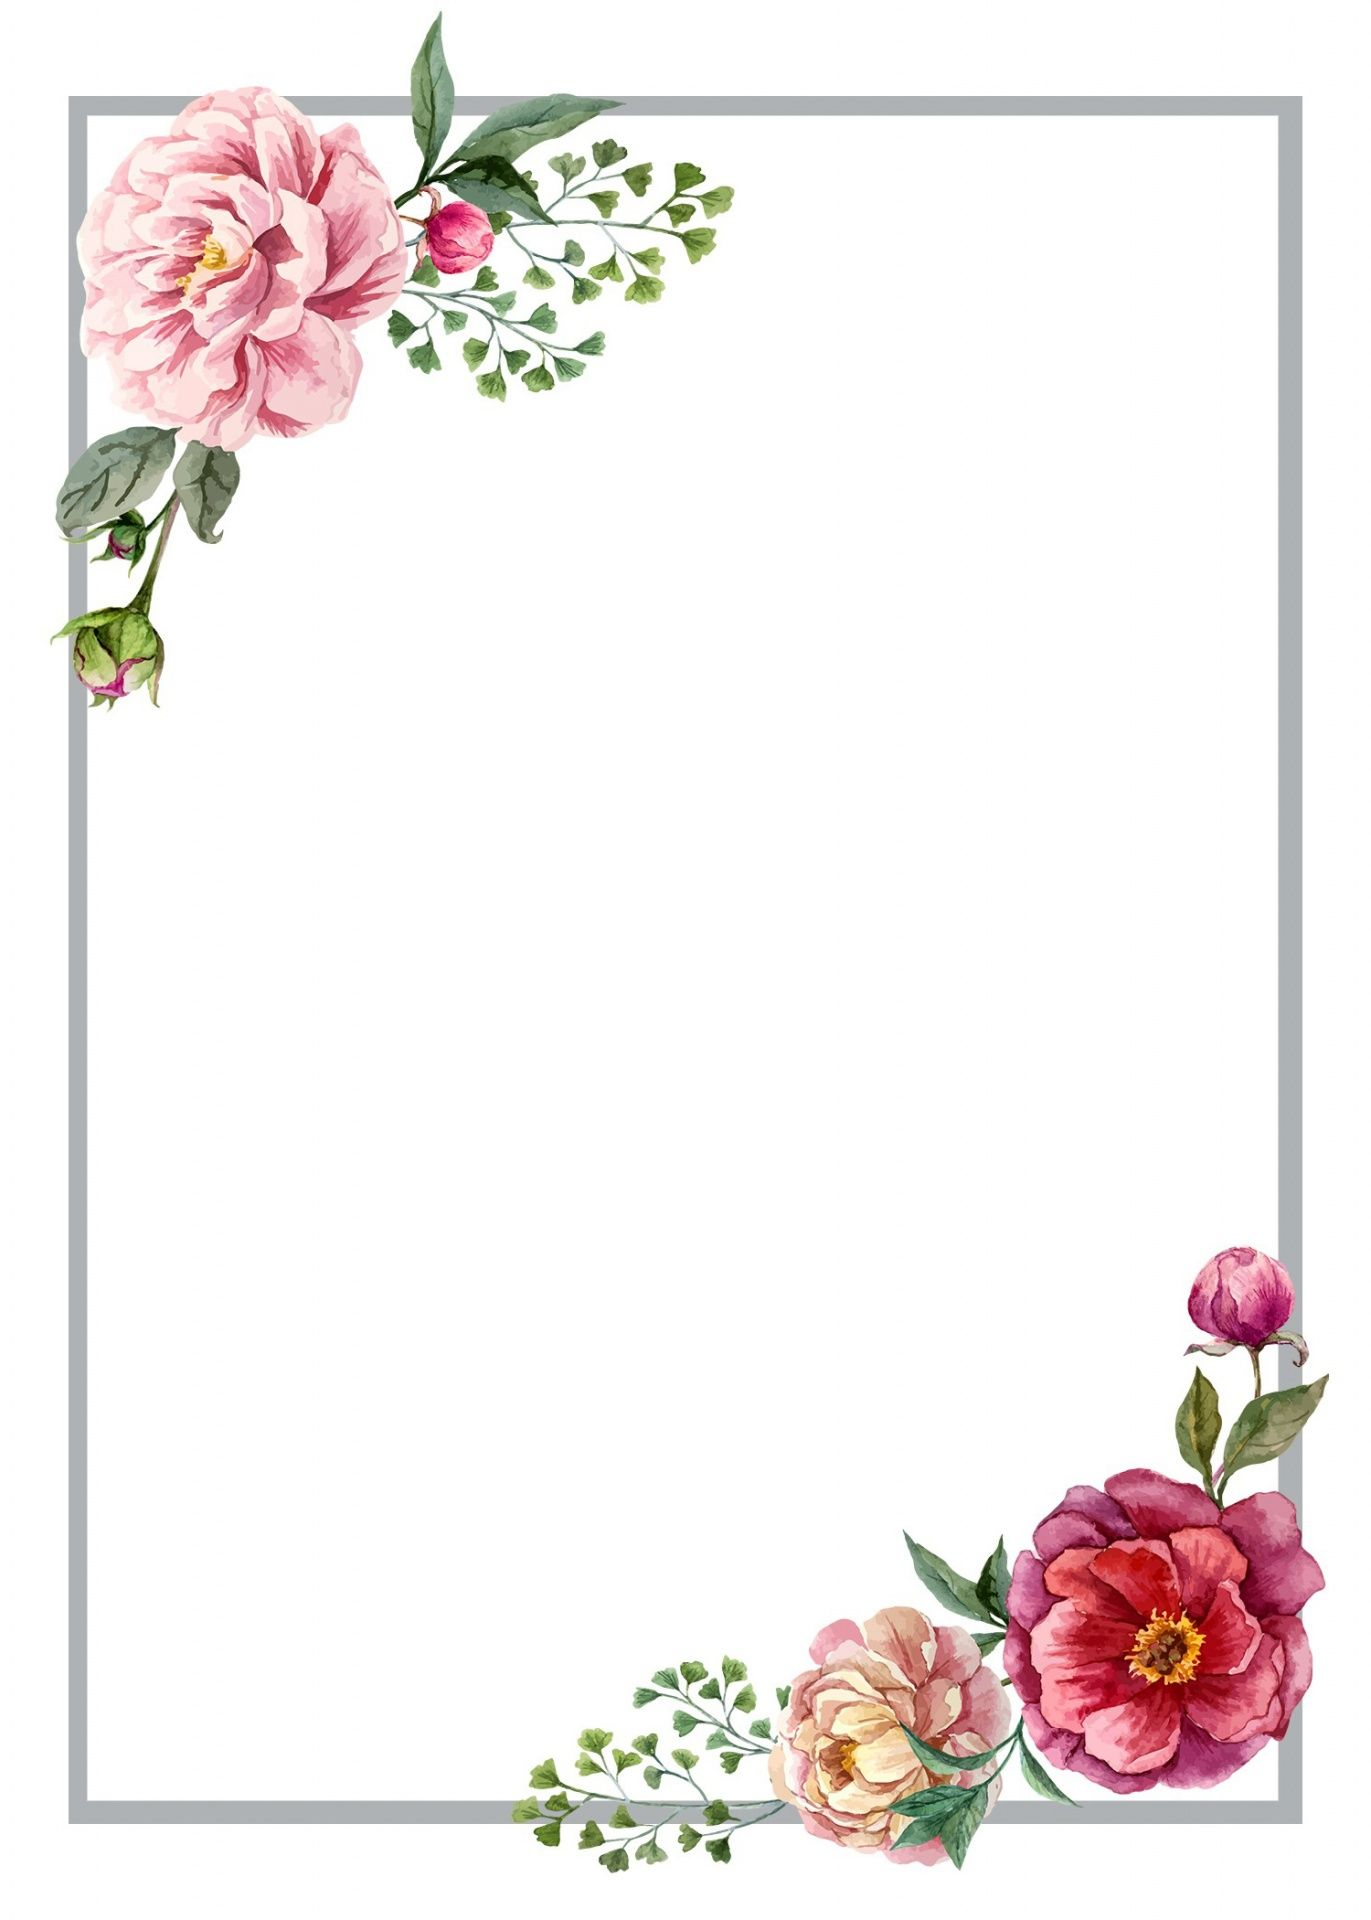 7 Flower Designs and a floral border Clipart for |Flower Border Designs For Wedding Cards